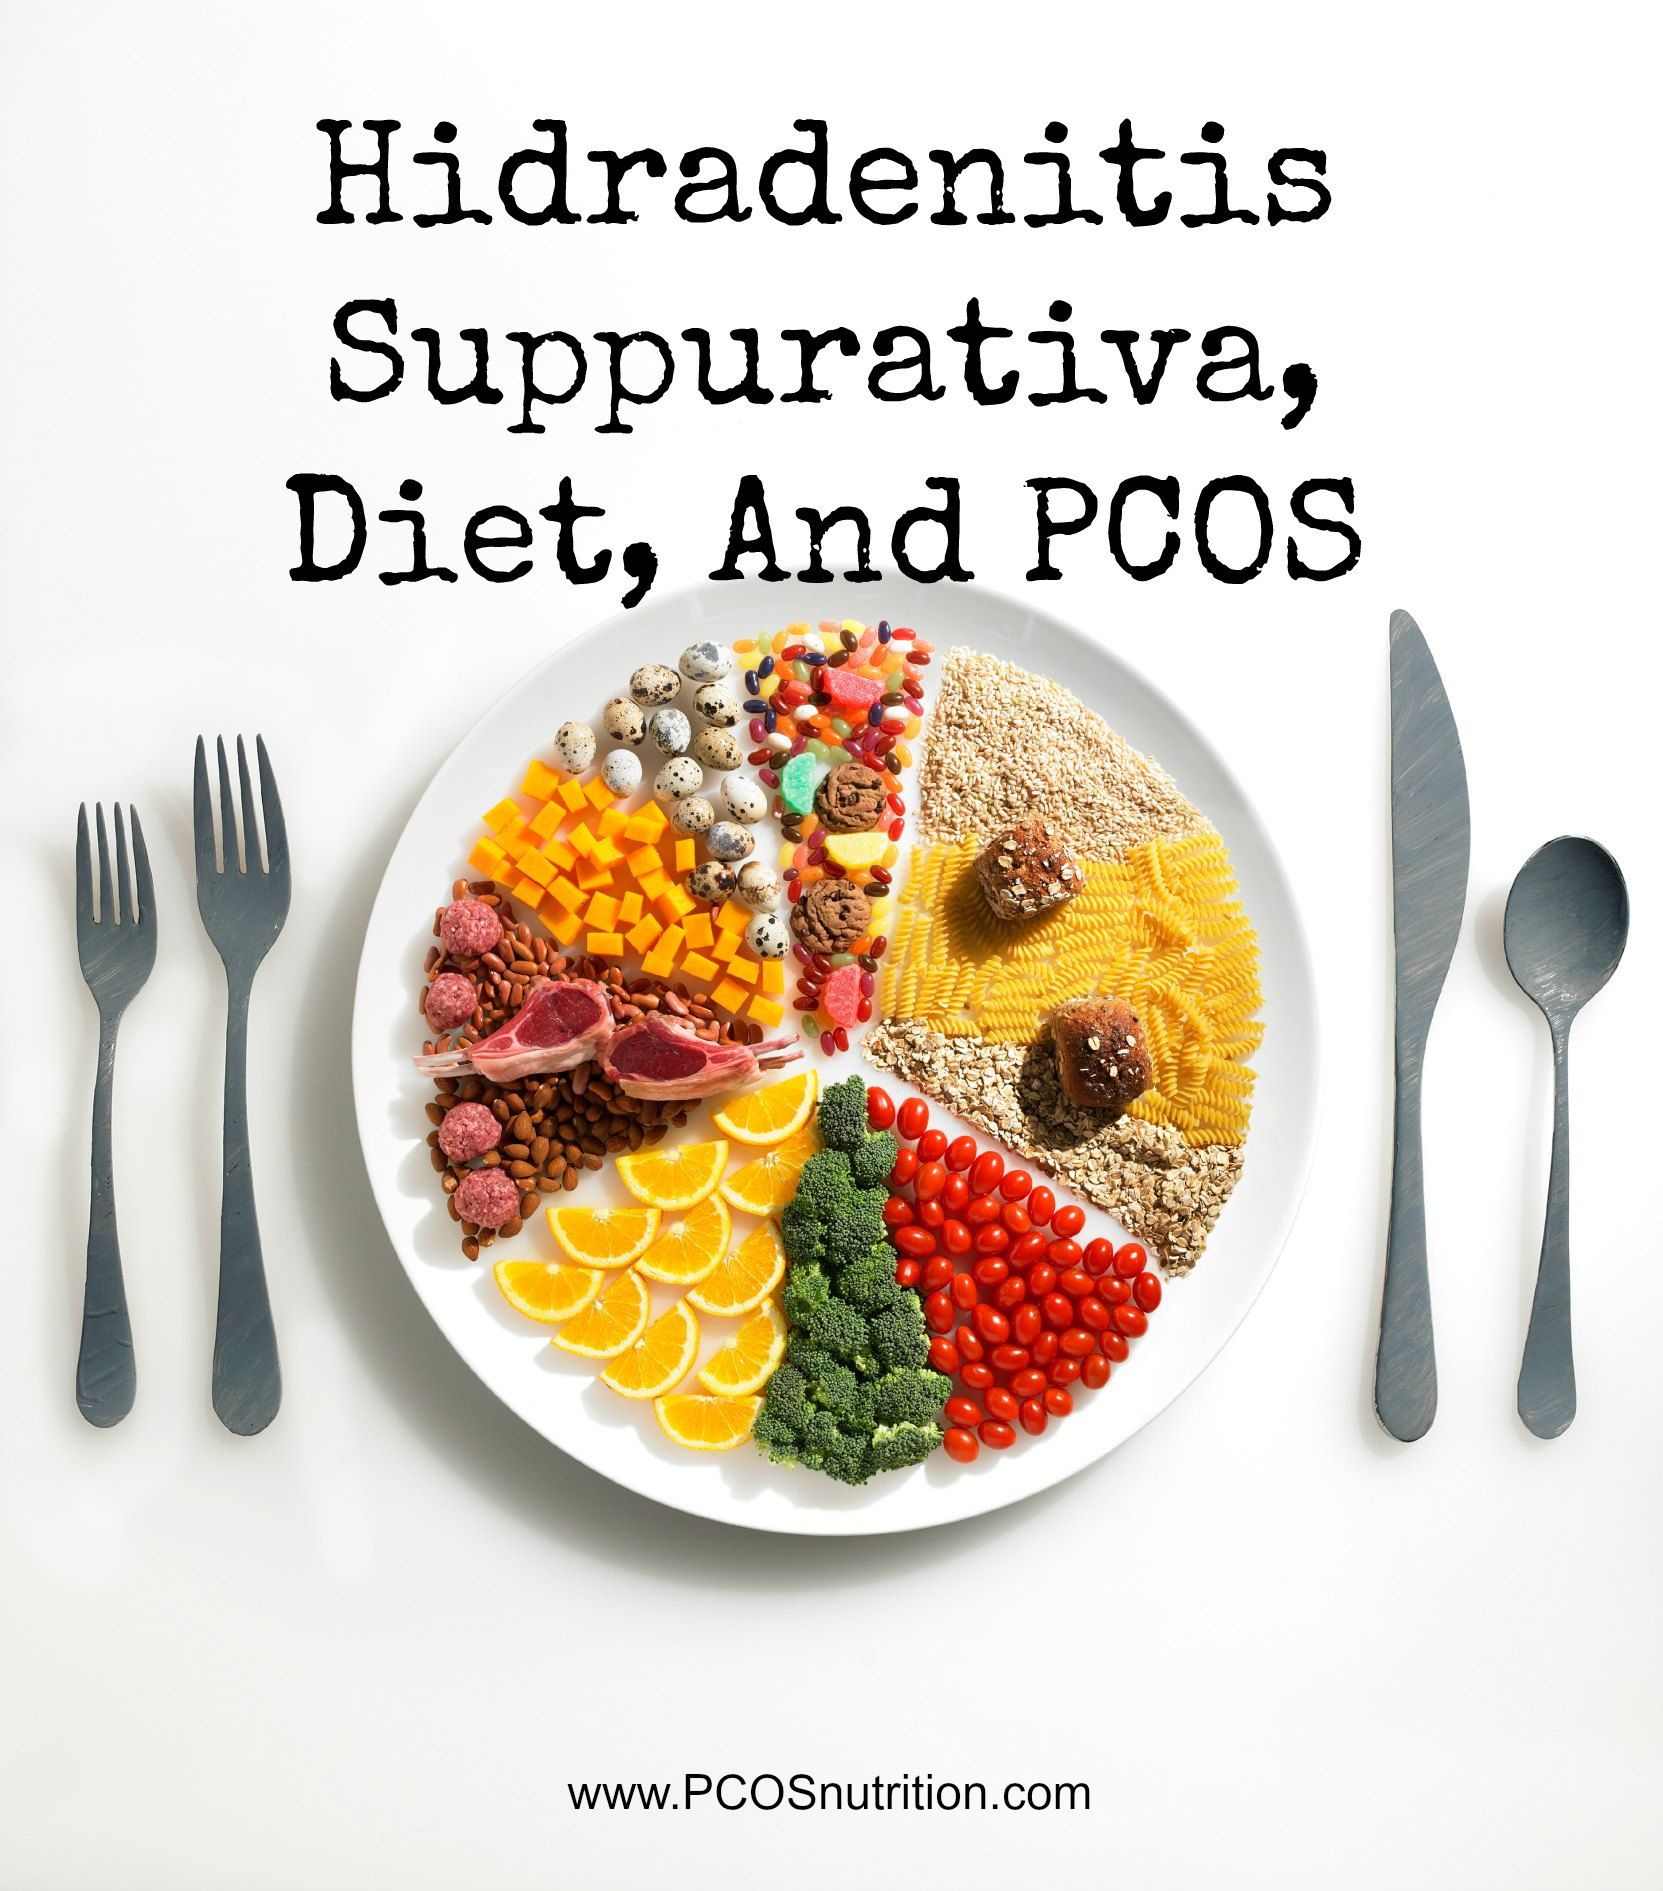 Hidradenitis Suppurativa, Diet, And PCOS is part of Nutrition and mental health - How diet can improve the skin condition Hidradenitis Suppurativa in PCOS